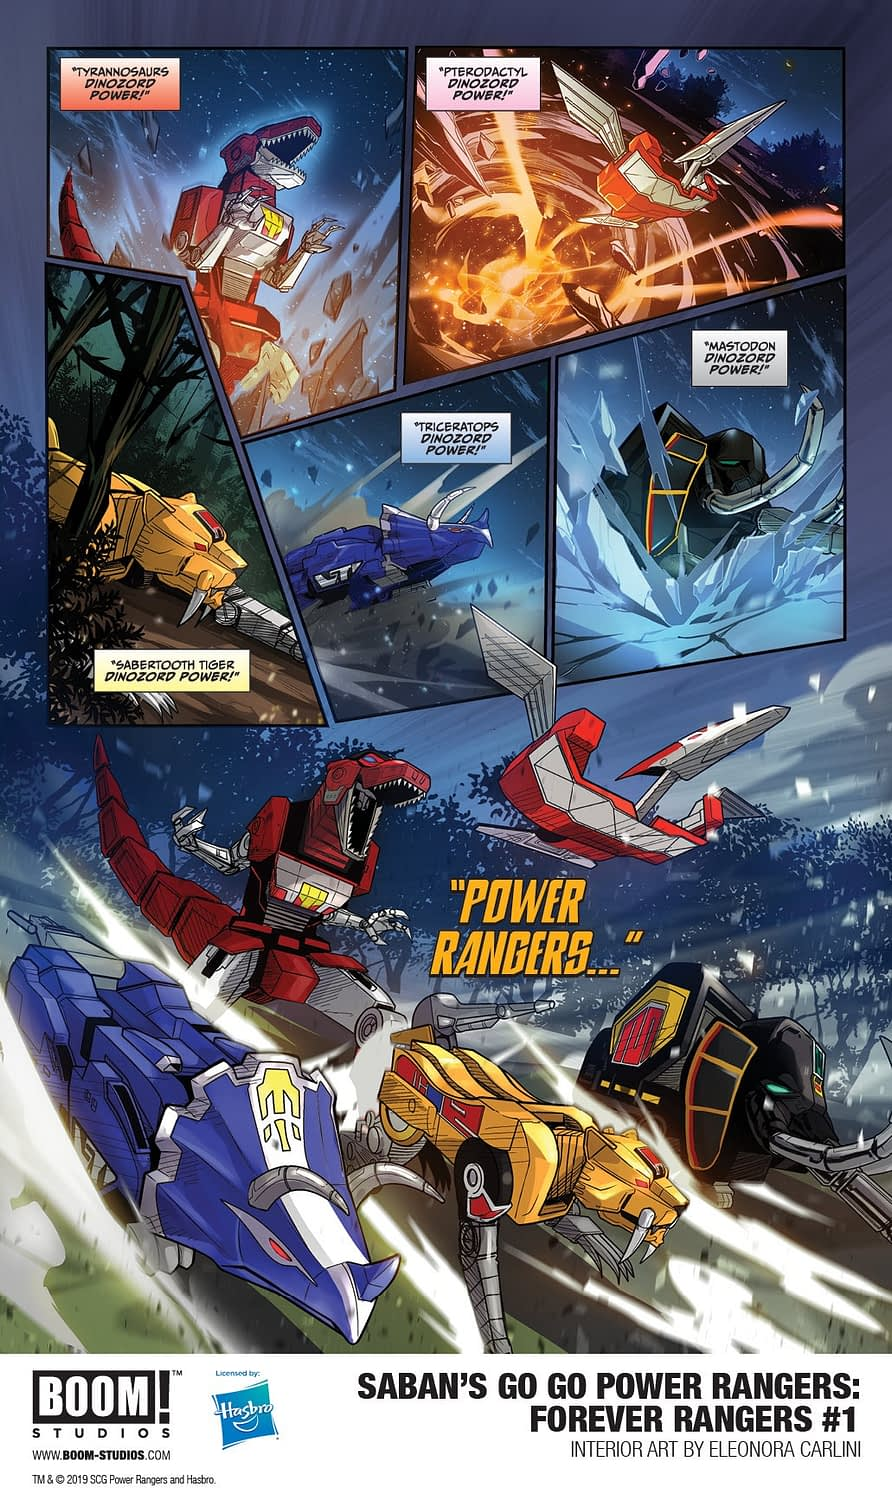 Go Back to the Future in Saban's Go Go Power Rangers: Forever Rangers Preview